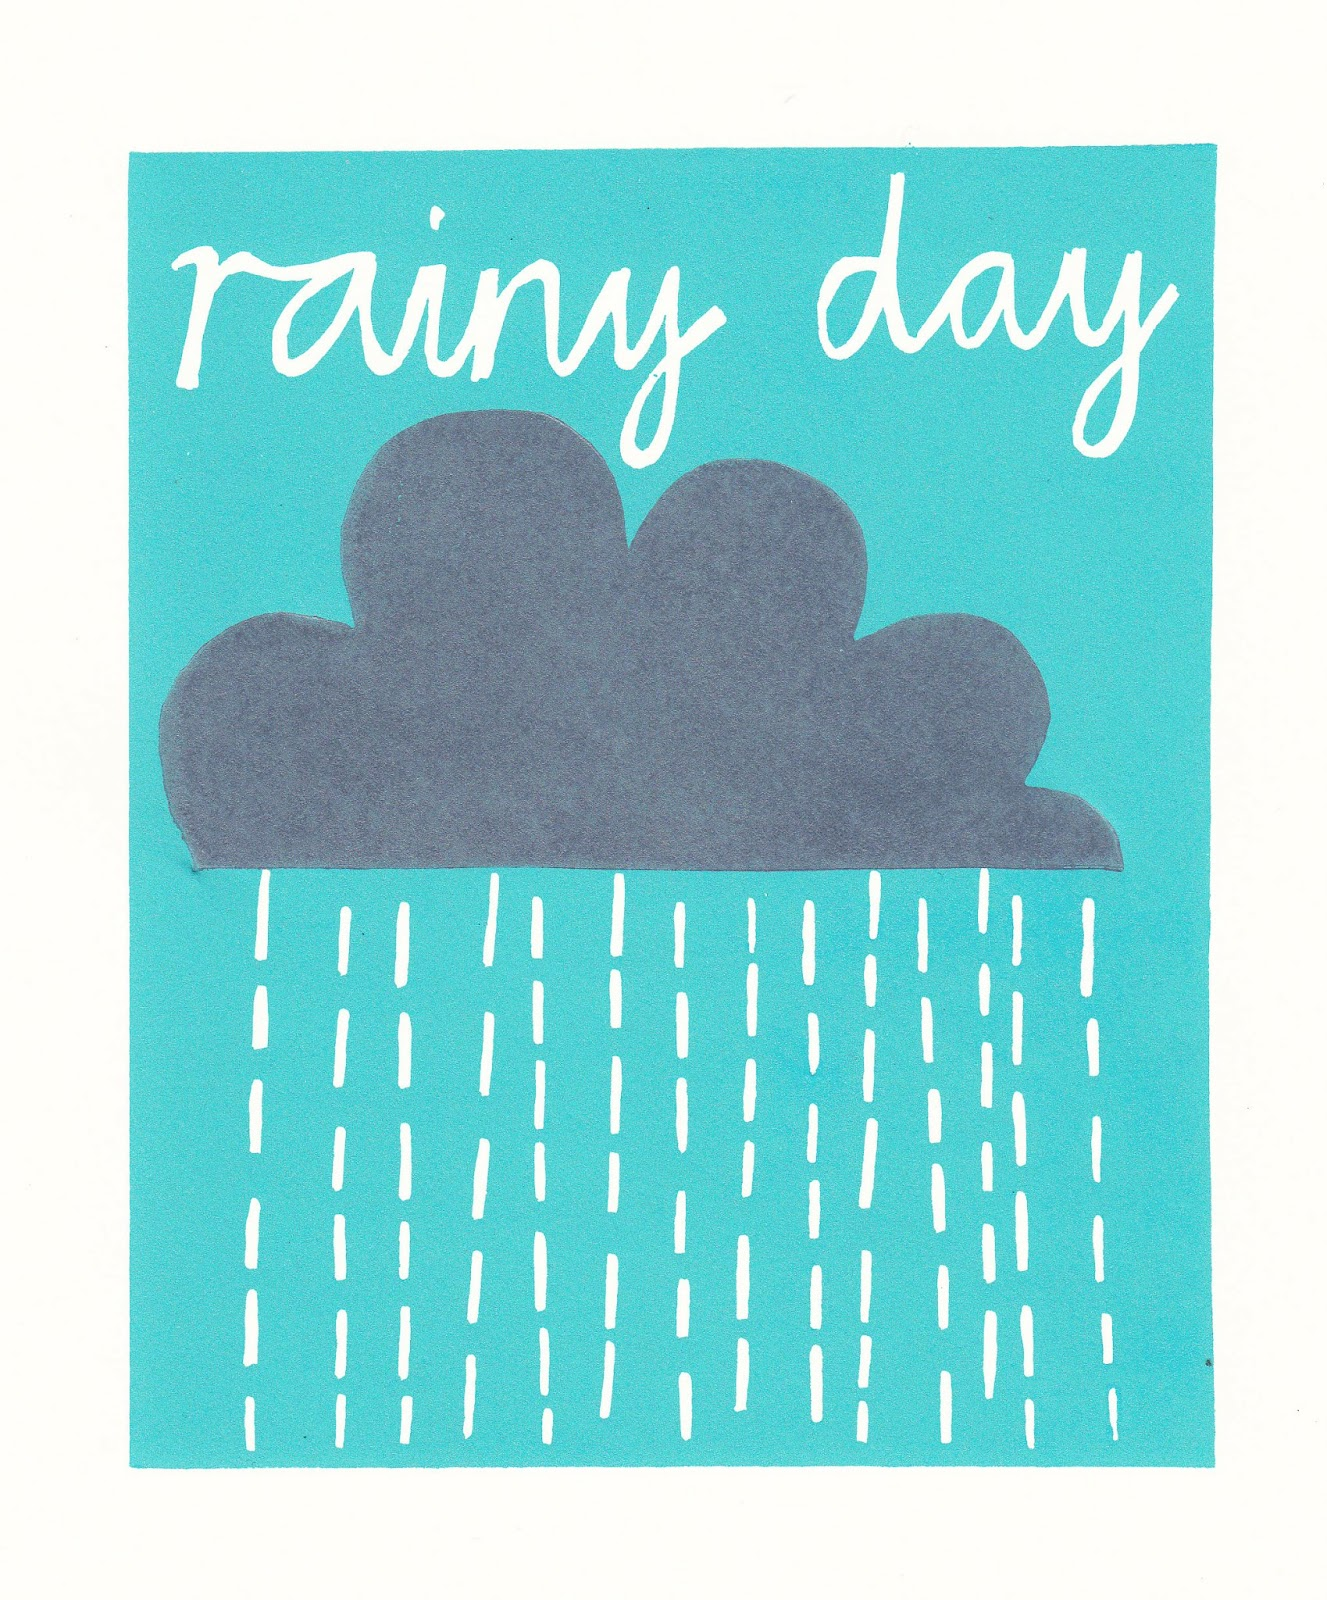 Essay On Rainy Day